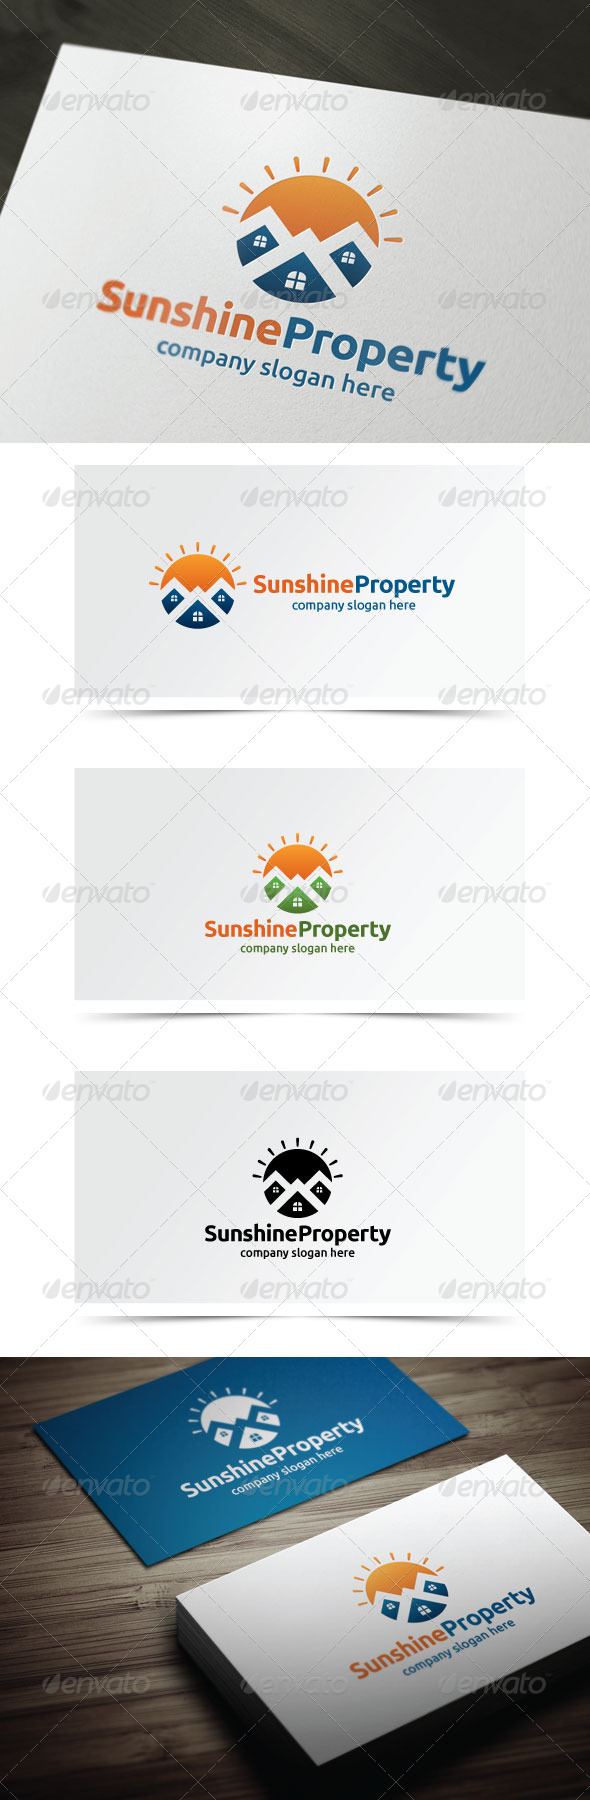 GraphicRiver Sunshine Property 5698699